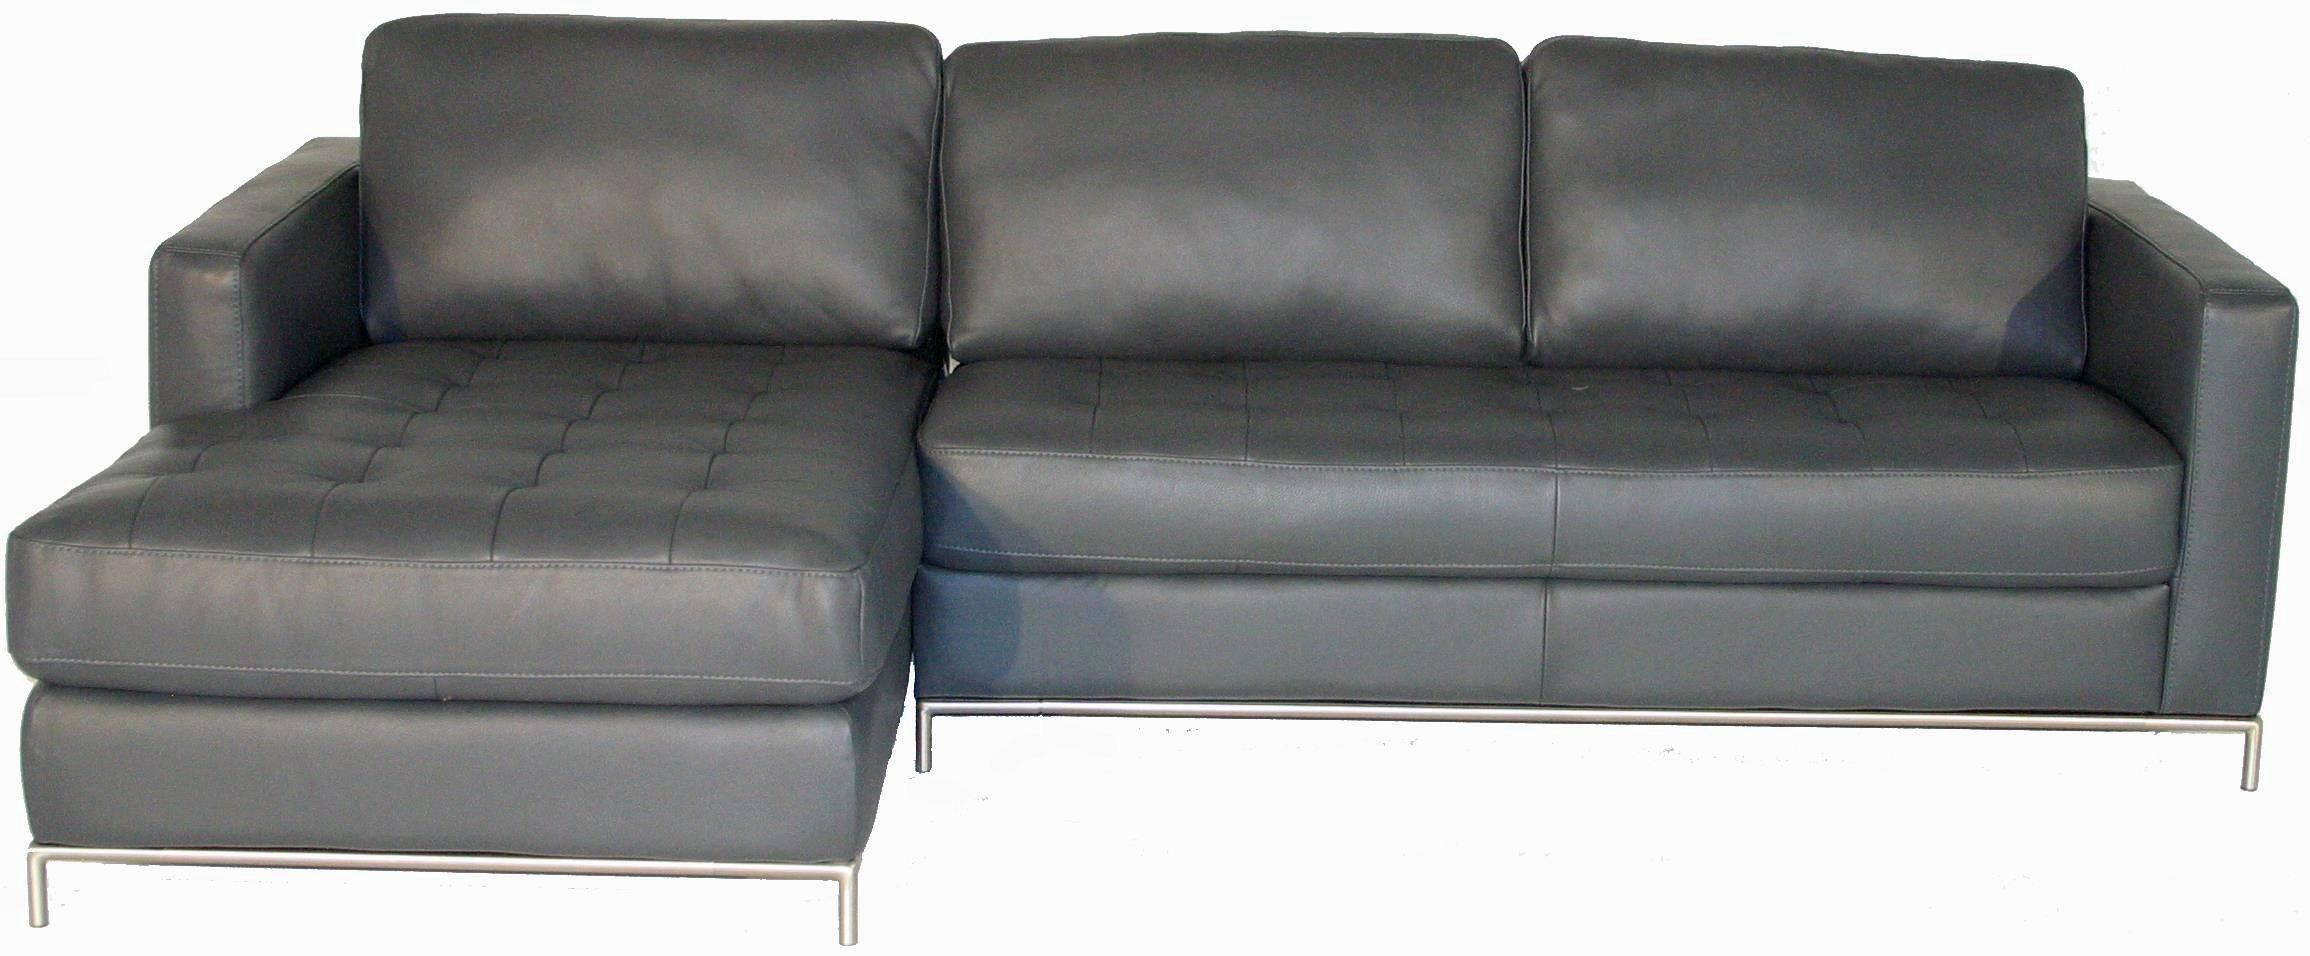 fancy costco sofas sectionals collection-Top Costco sofas Sectionals Design